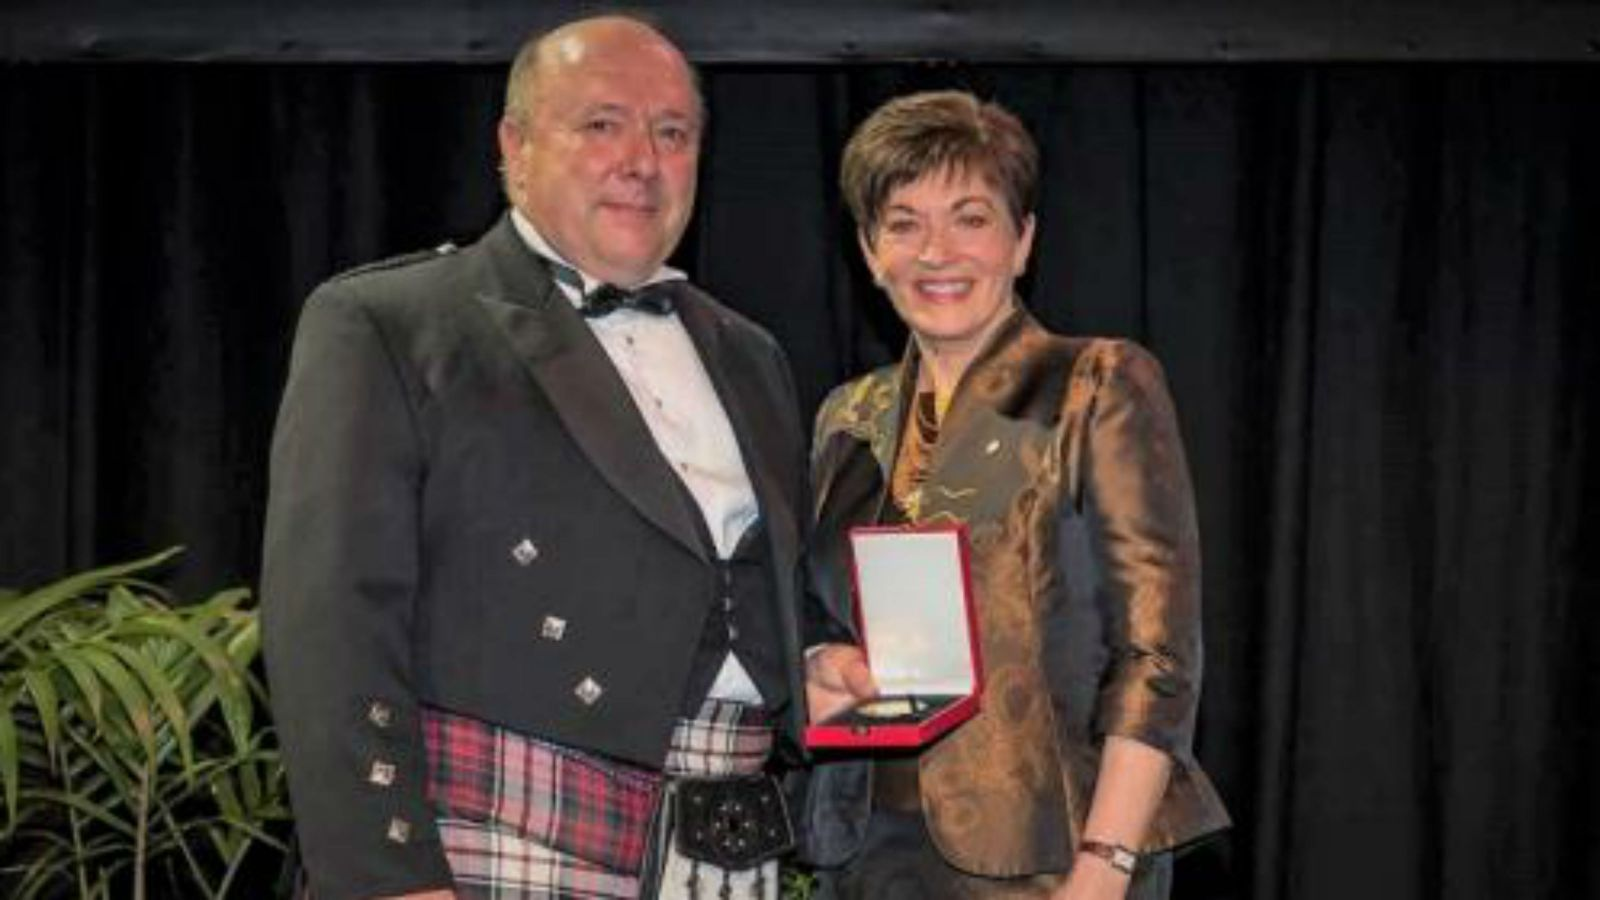 Professor Rod Downey being awarded the Rutherford Medal by the Governor-General of New Zealand, Her Excellency Dame Patsy Reddy, at 2018 Research Honours Aotearoa